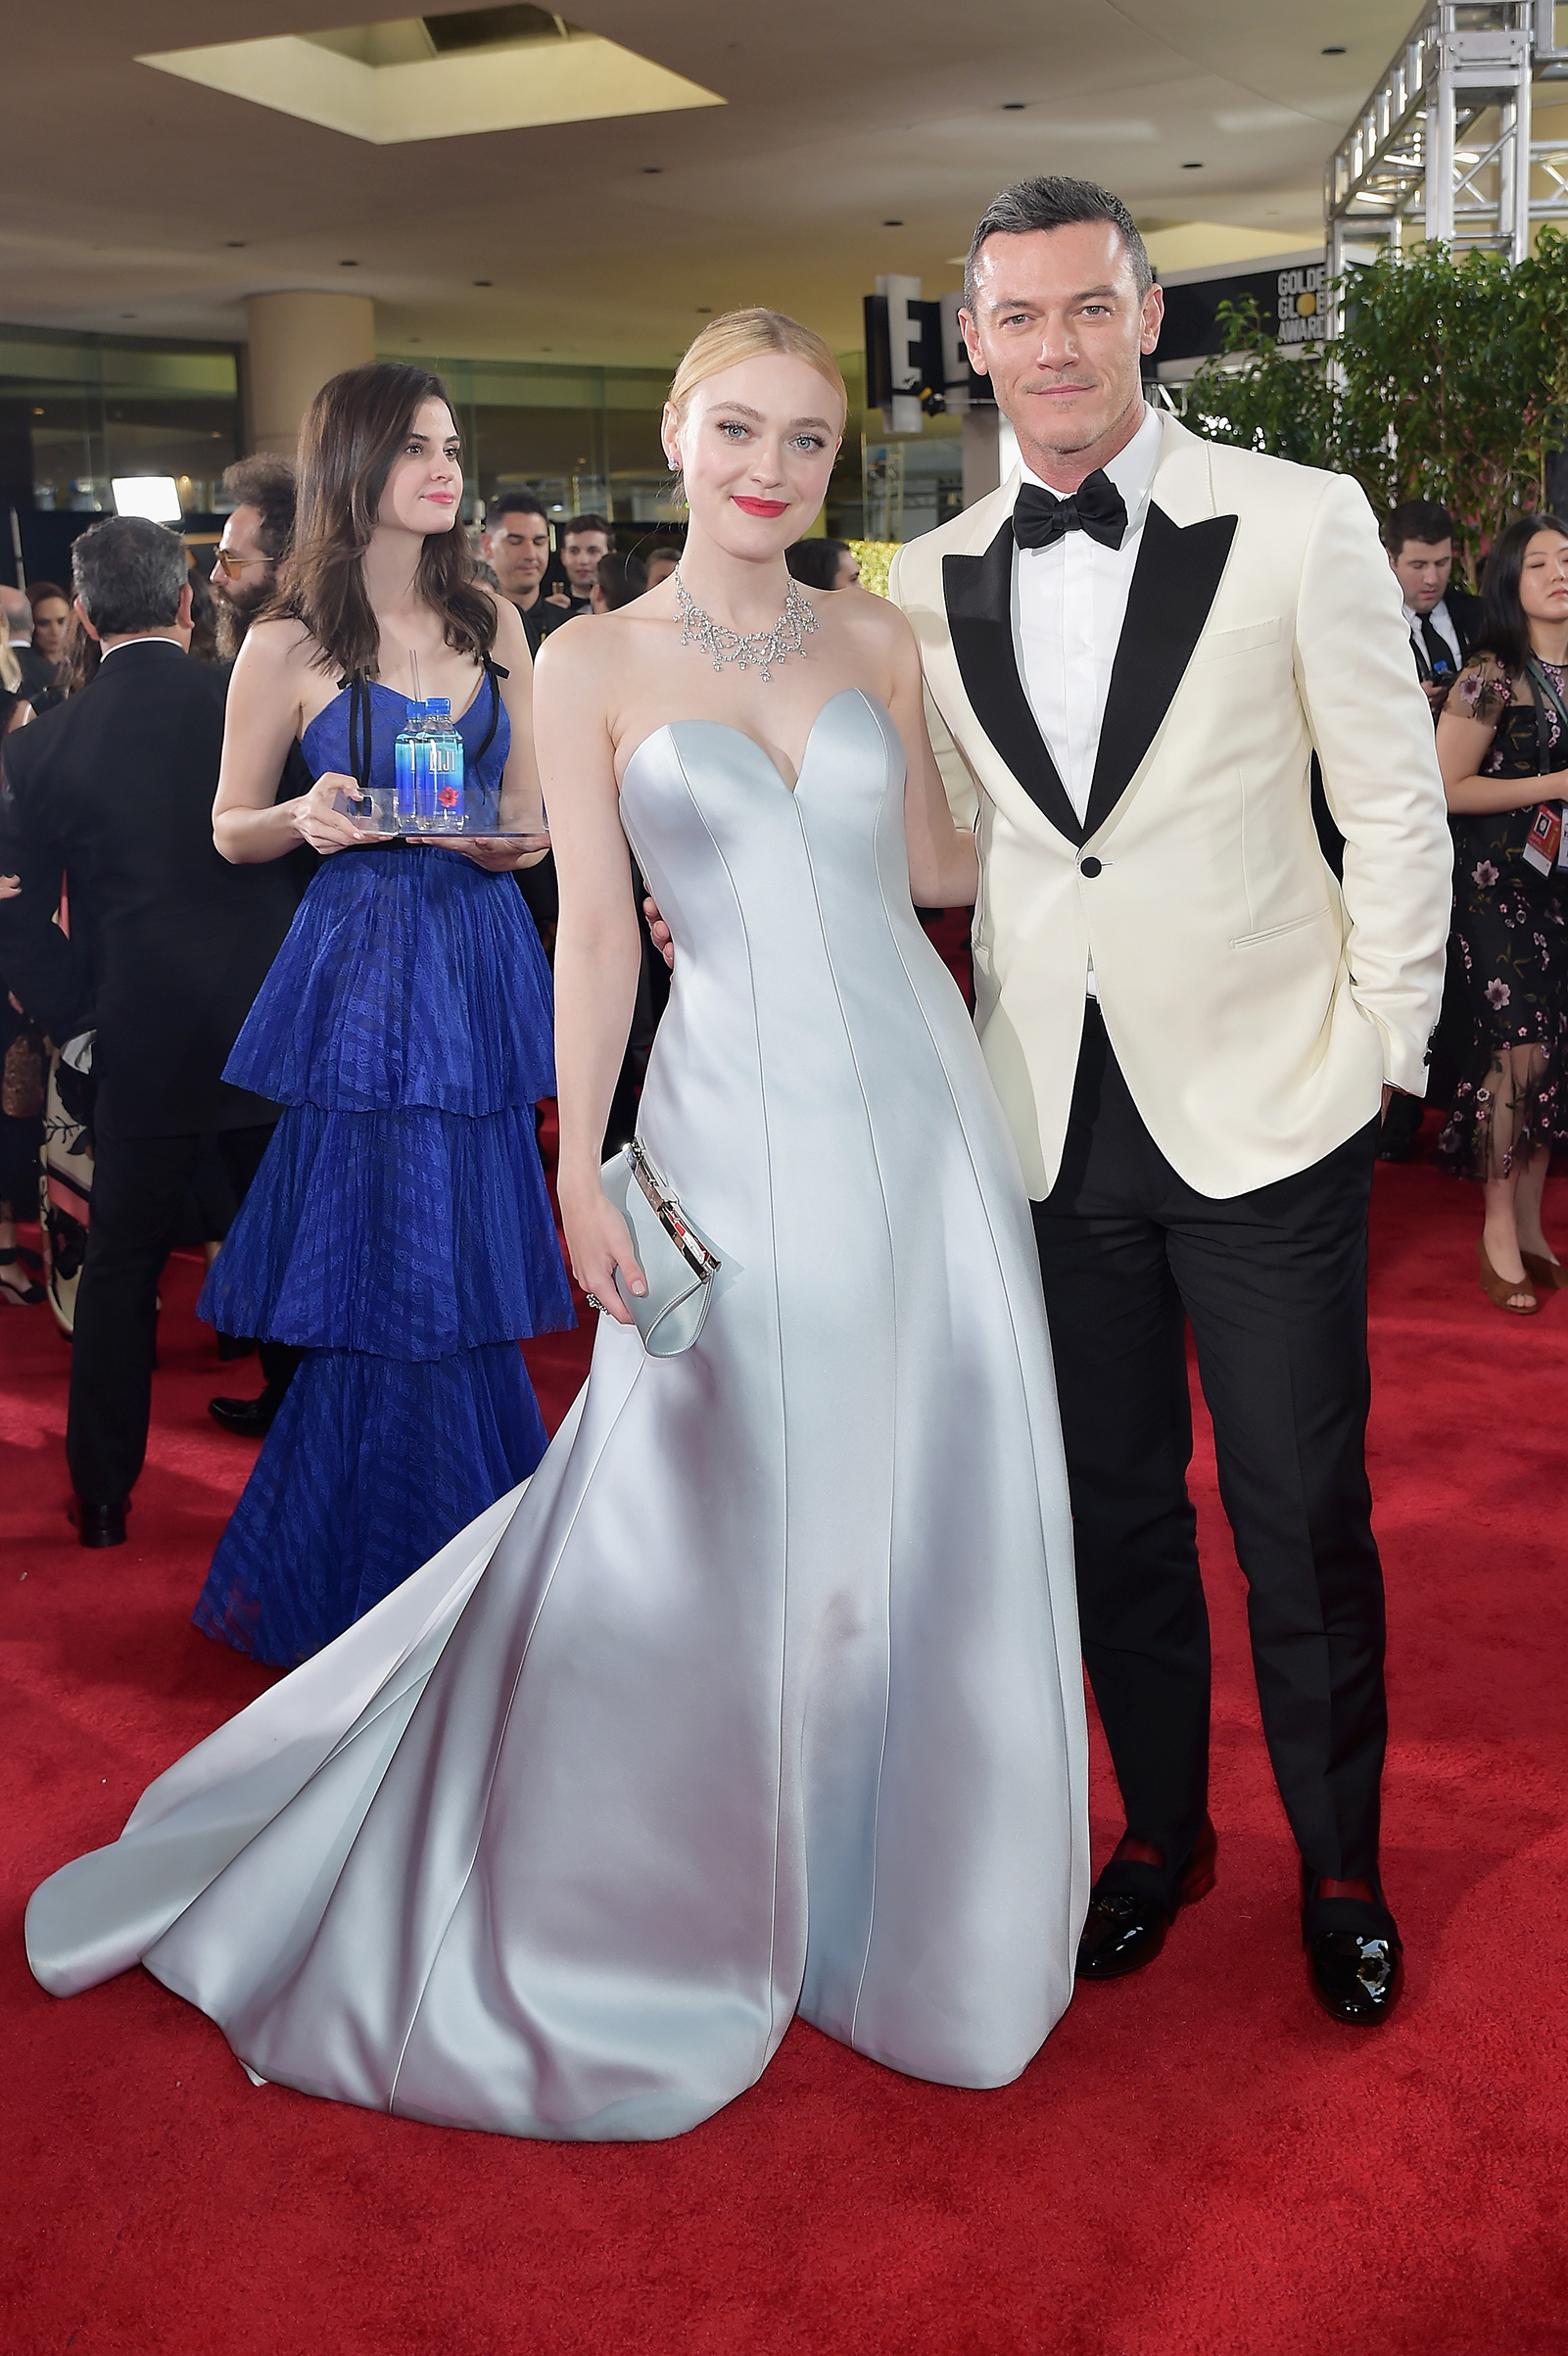 Dakota Fanning and Luke Evans attend the 76th Annual Golden Globe Awards on Jan. 6, 2019 at the Beverly Hilton in Los Angeles.